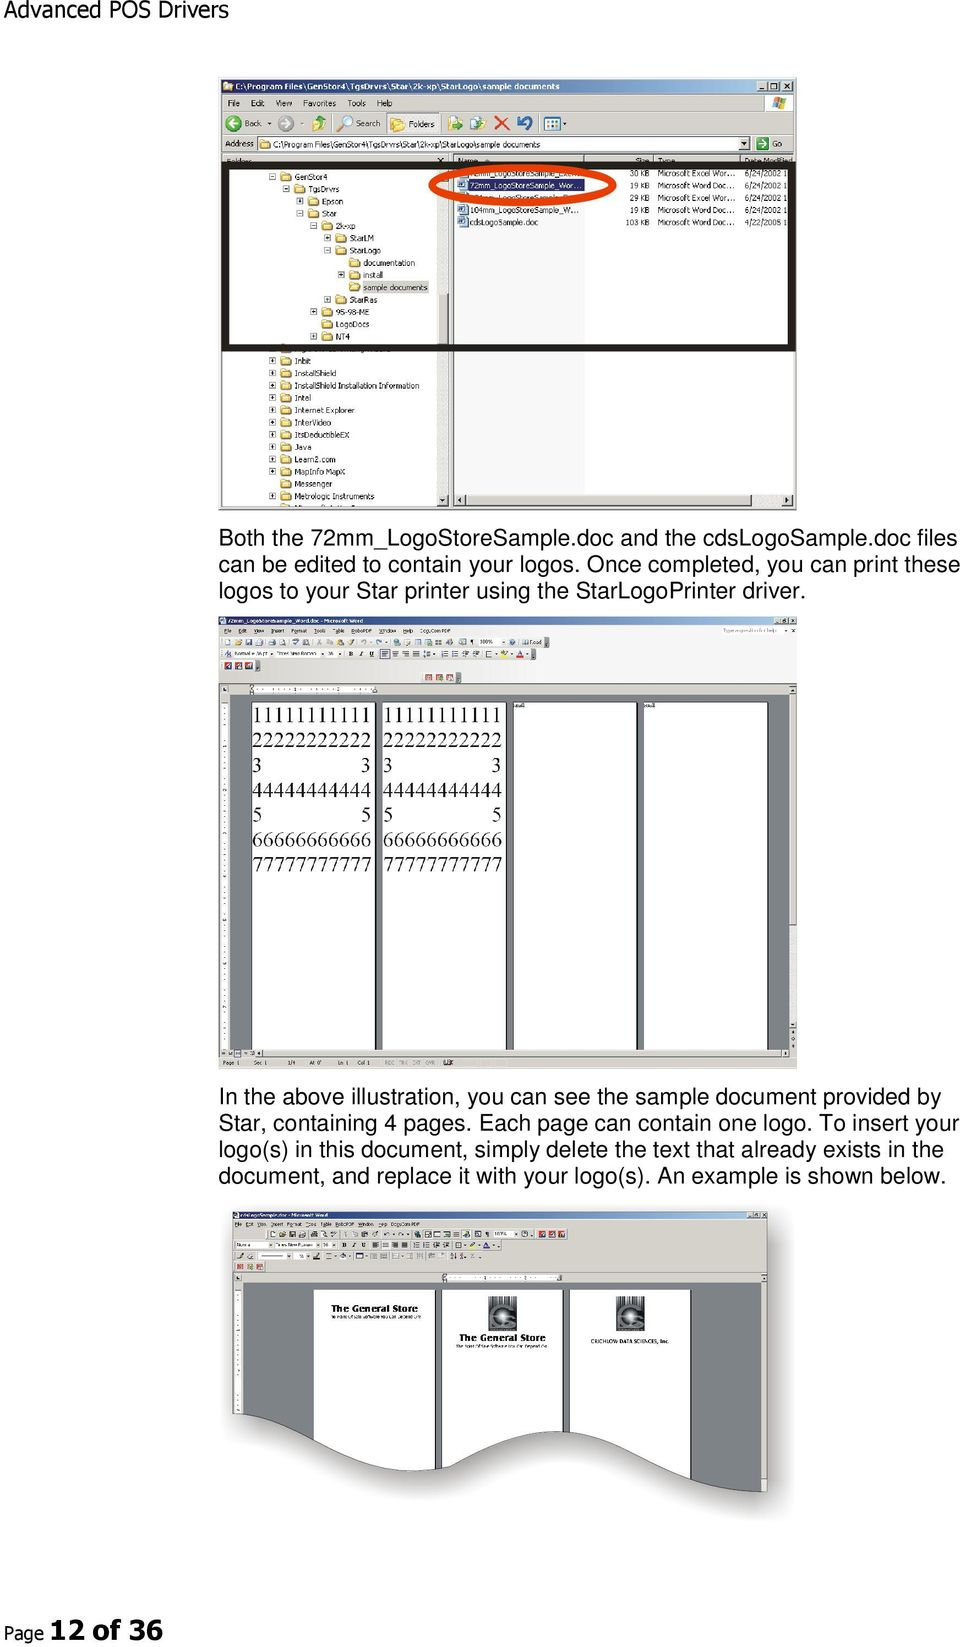 In the above illustration, you can see the sample document provided by Star, containing 4 pages.